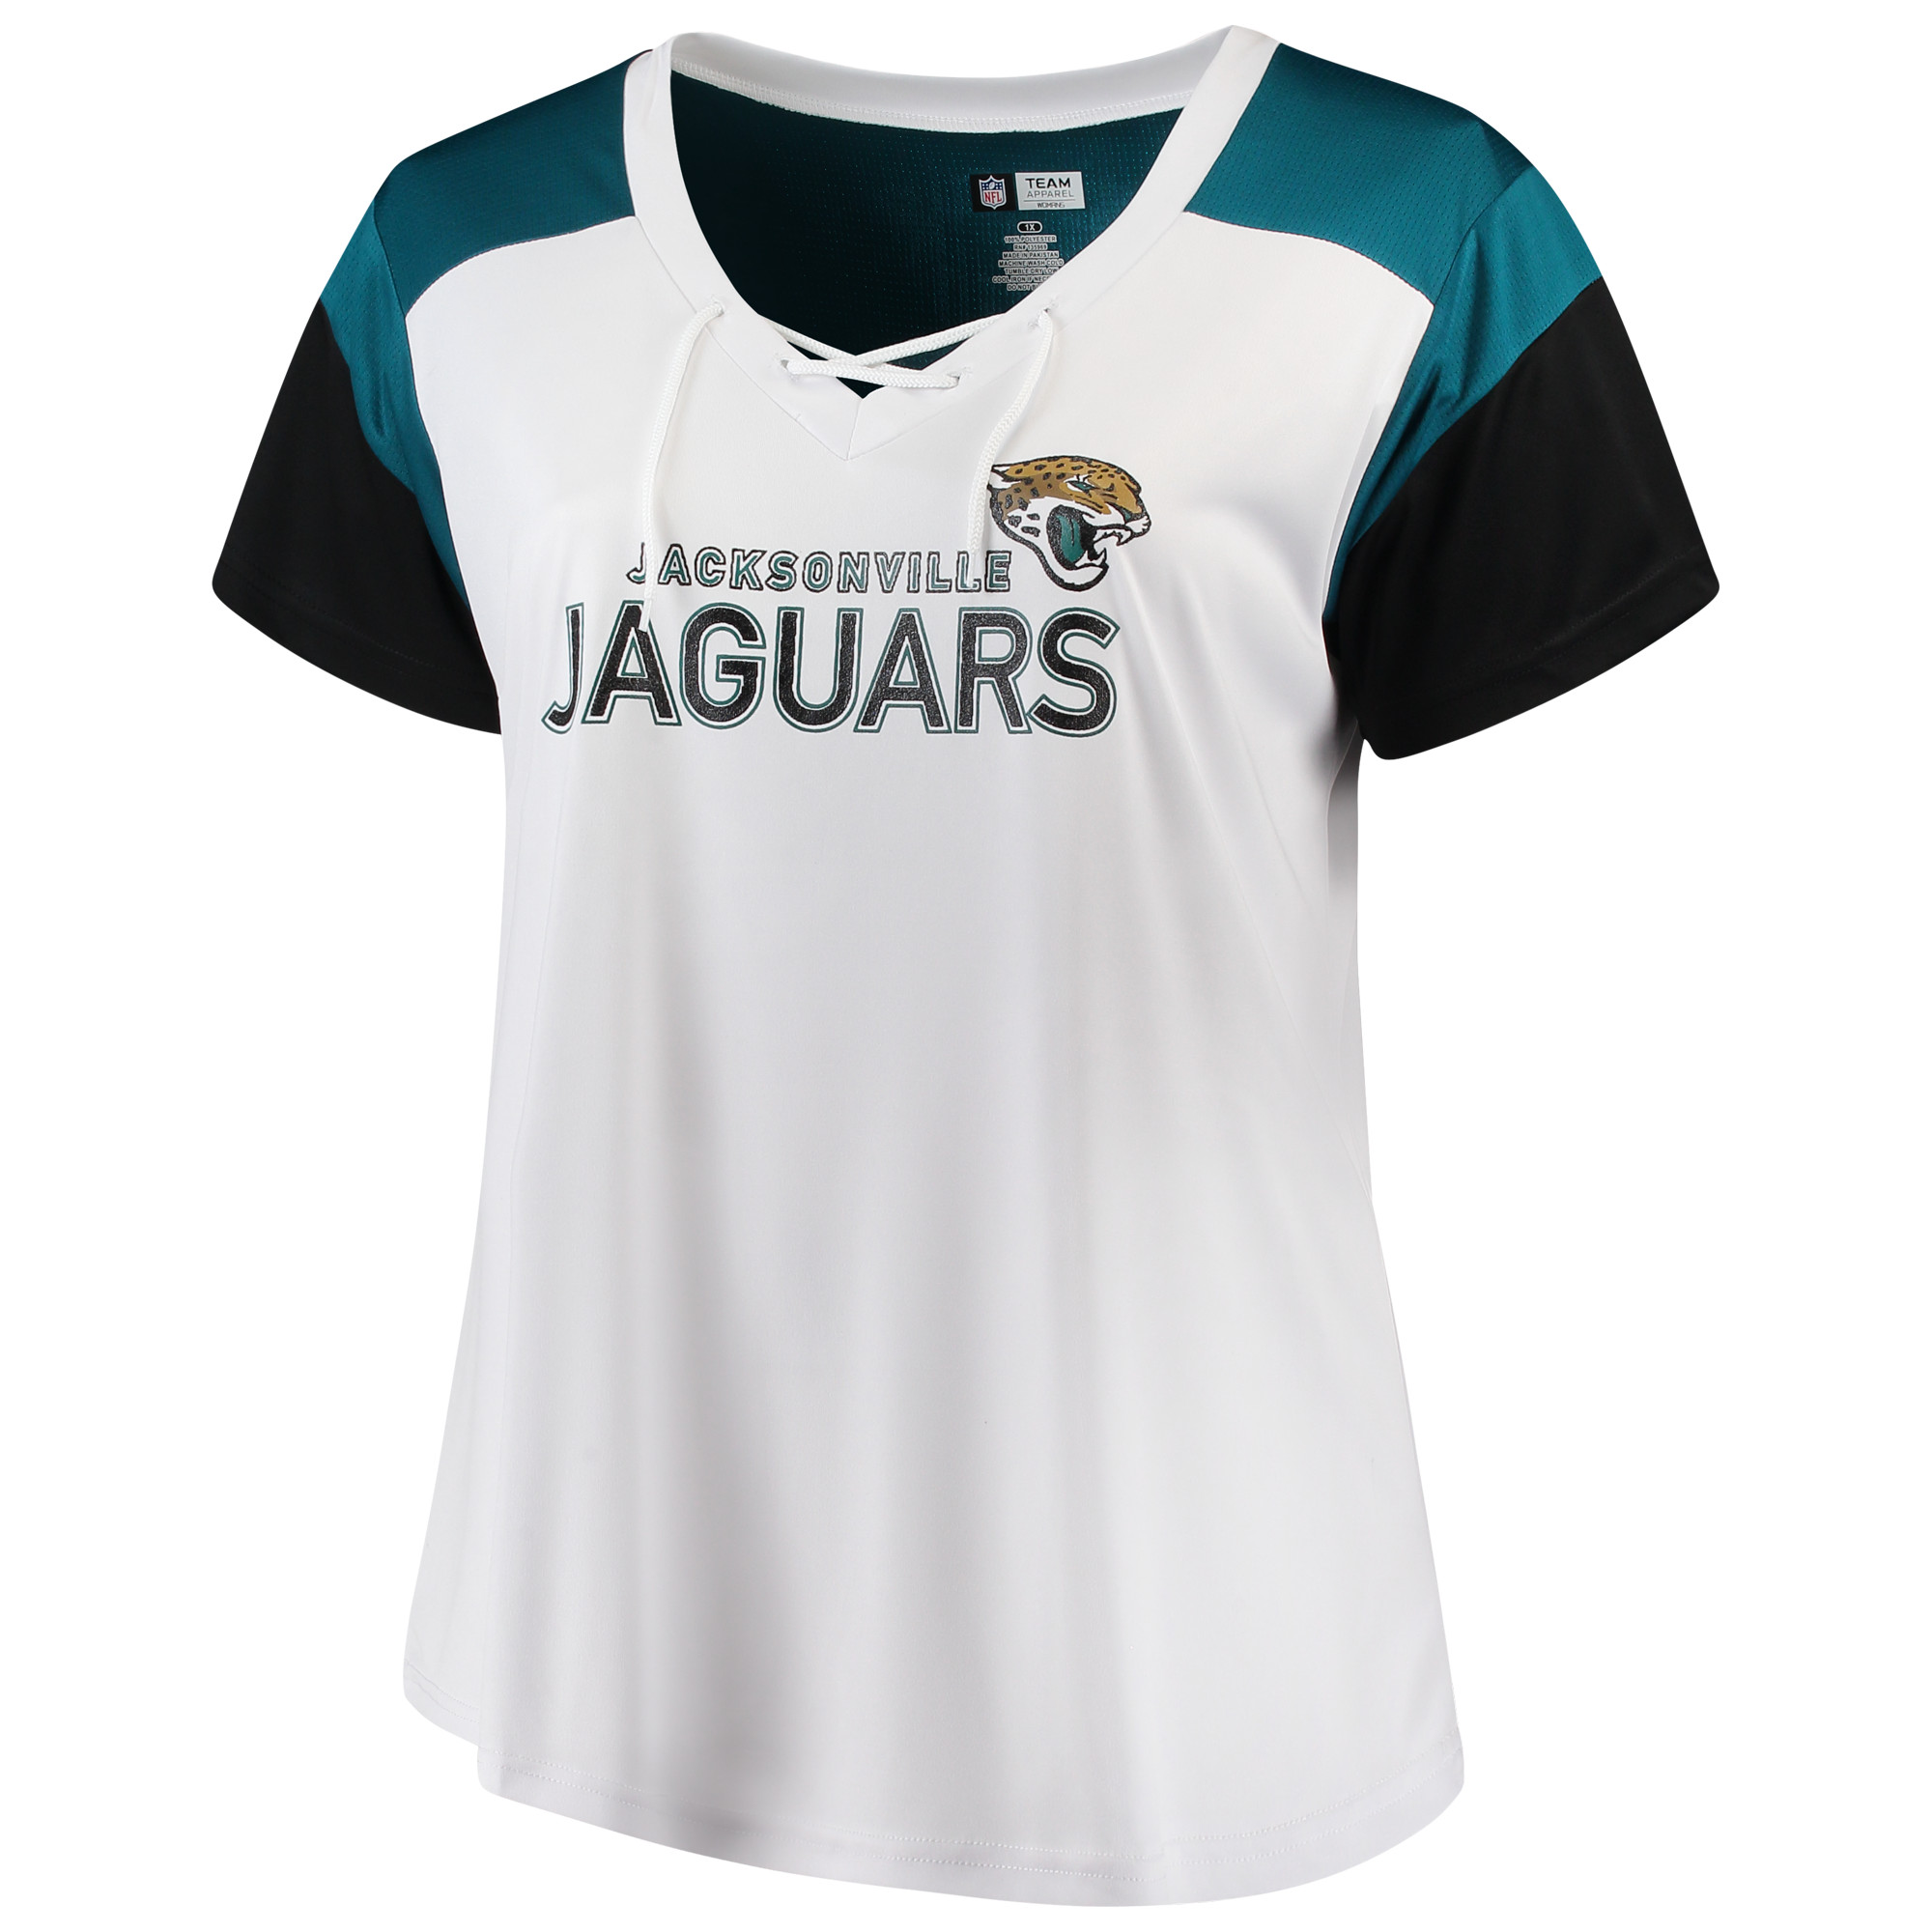 Women's Majestic White/Black Jacksonville Jaguars Lace-Up V-Neck T-Shirt